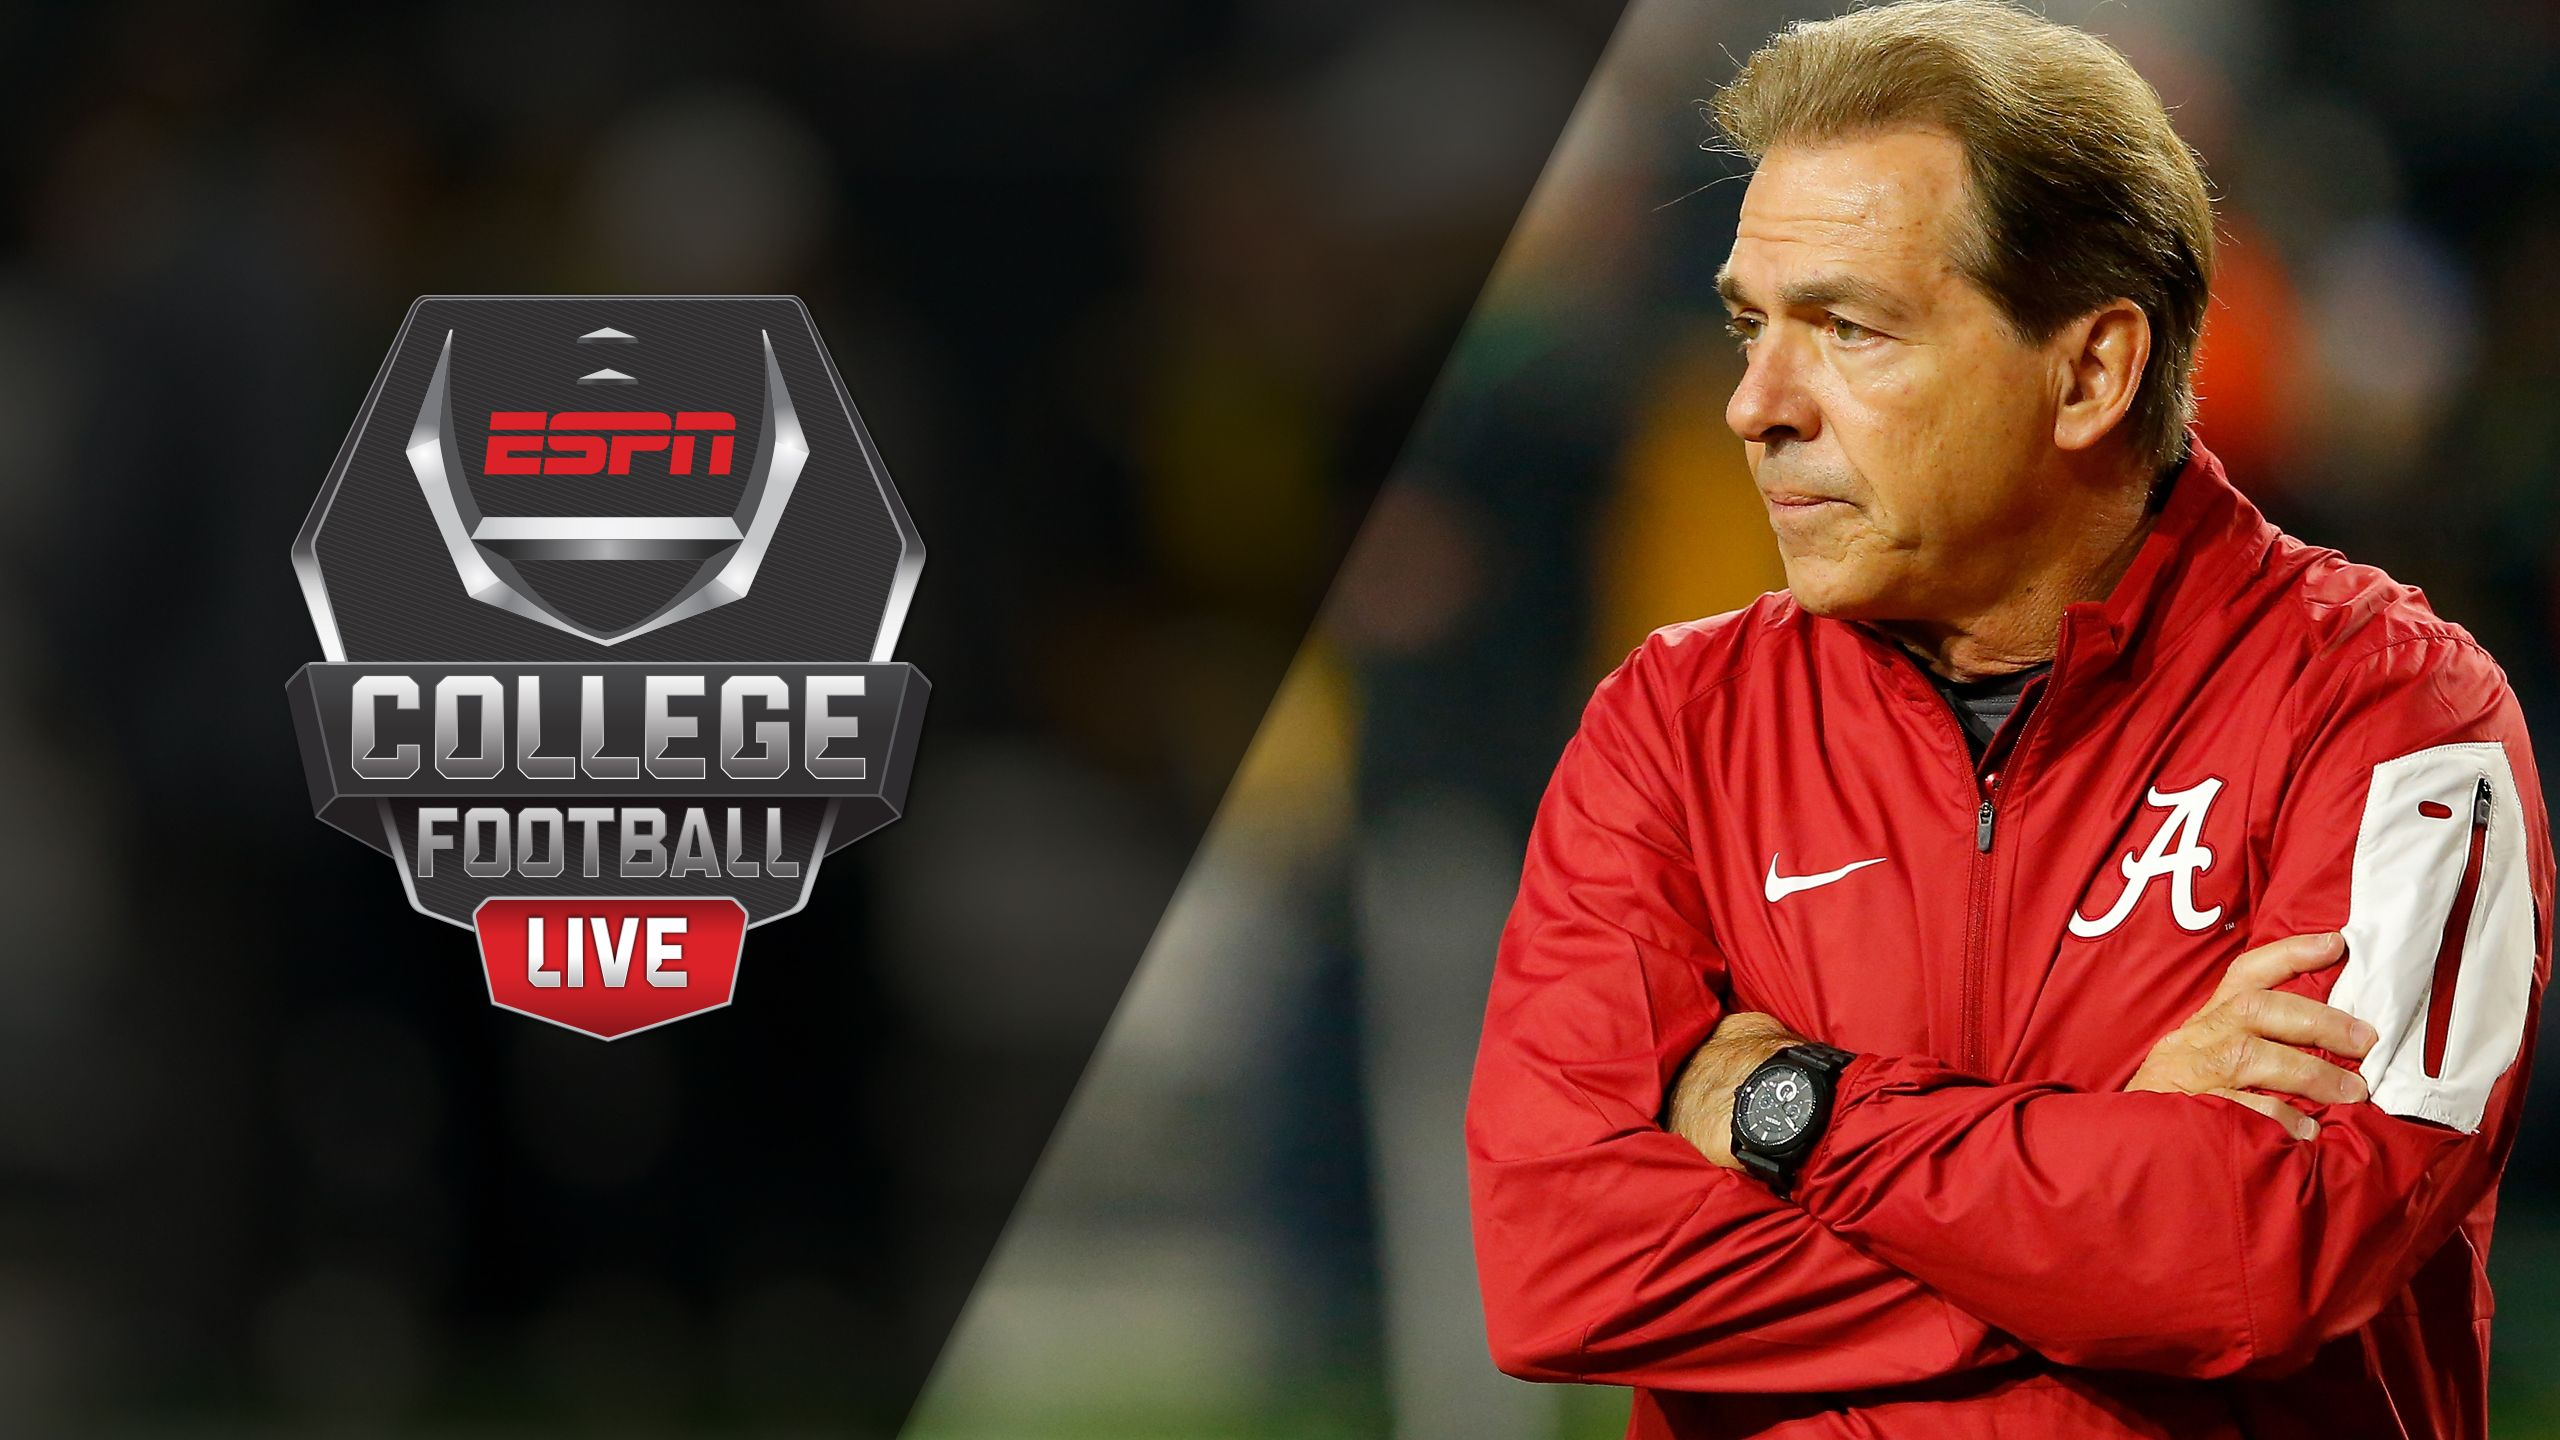 espn 360 college football college fiotball